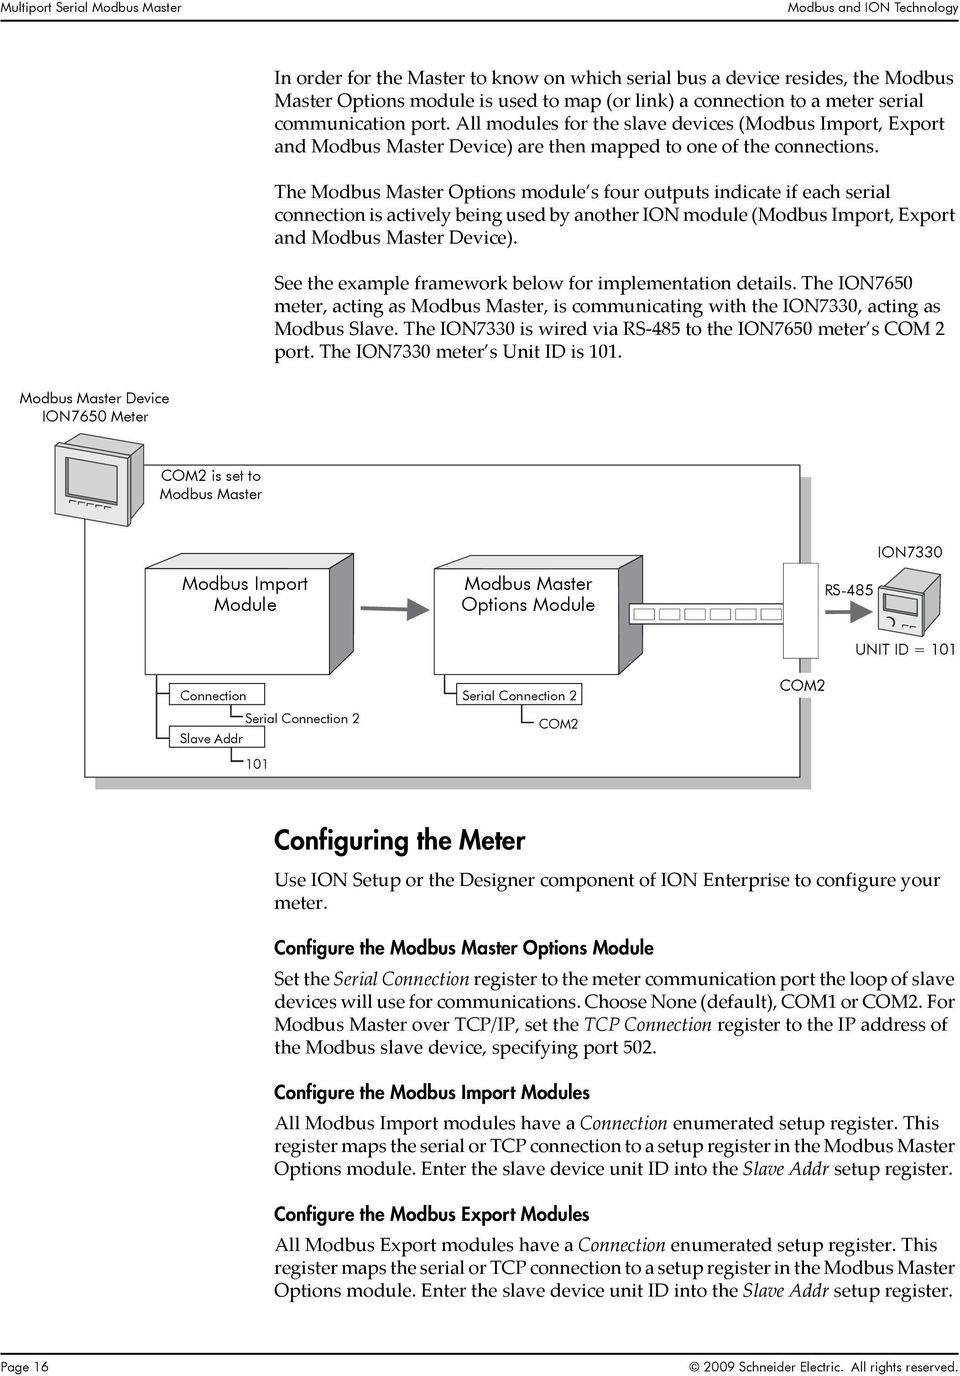 Modbus and ION Technology - PDF Free Download